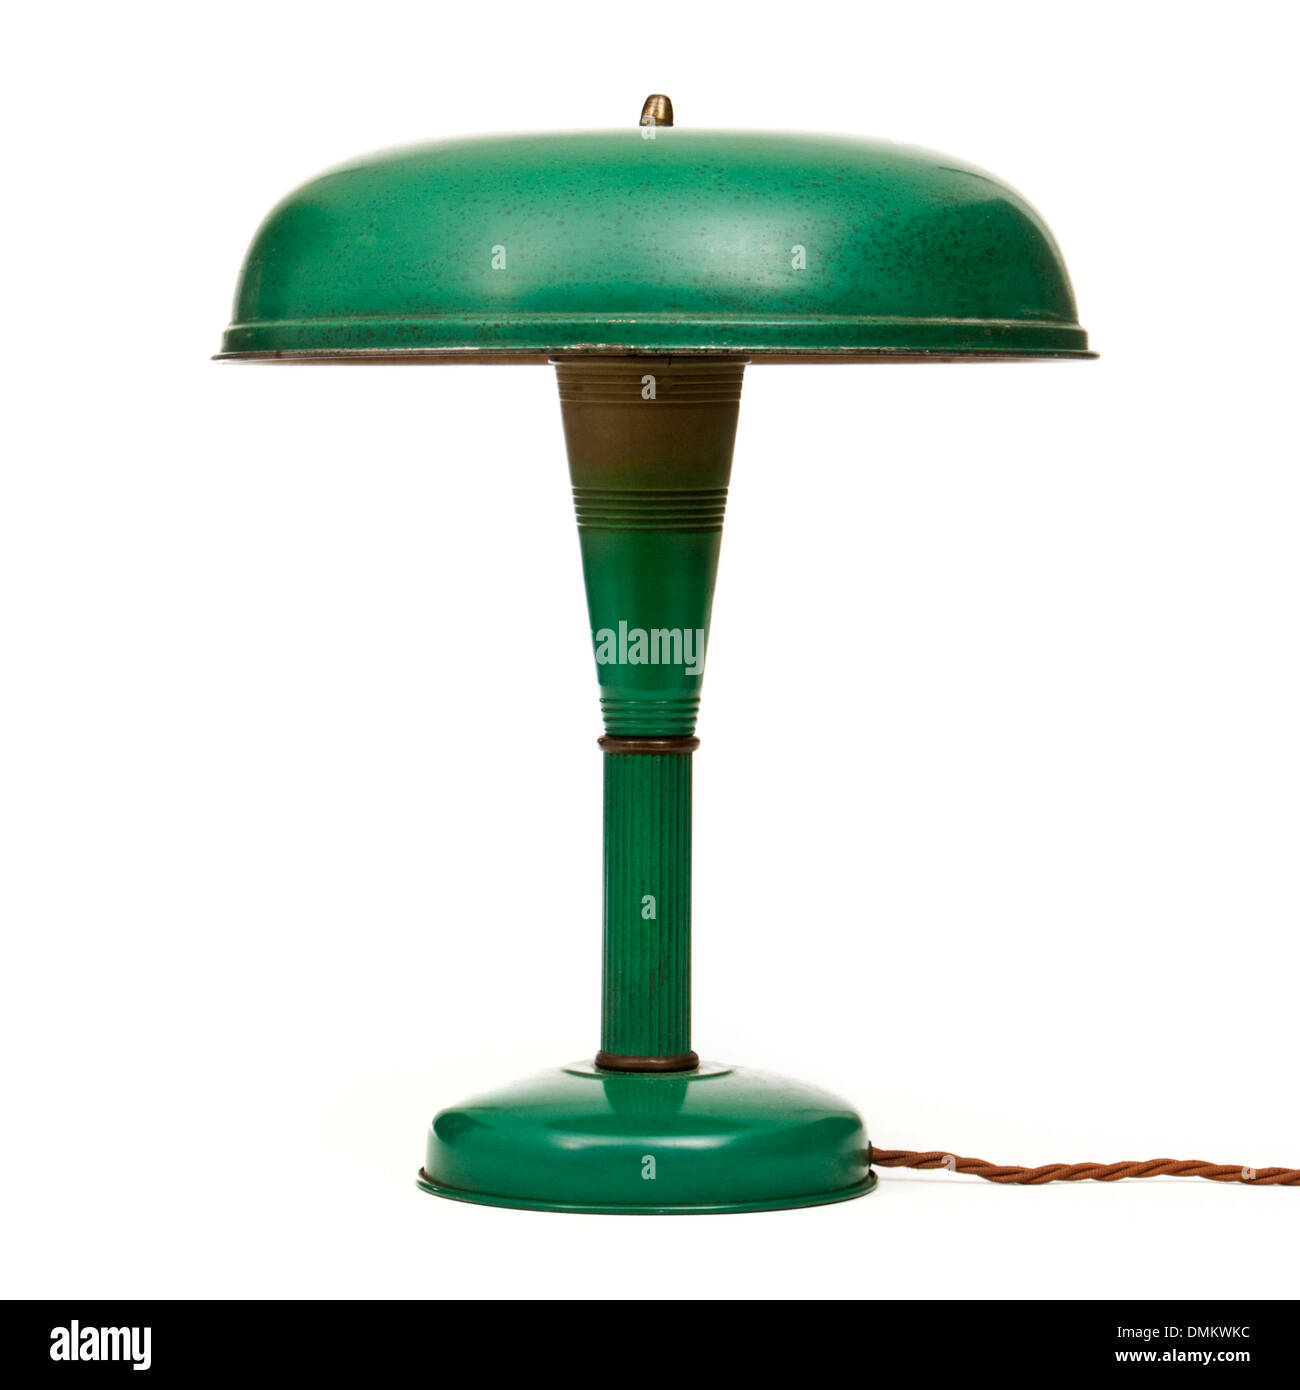 Vintage desk lamp made by the Keystone Lamp Mfg Corp, Slatington, Pensylvania (model 11620) - Stock Image